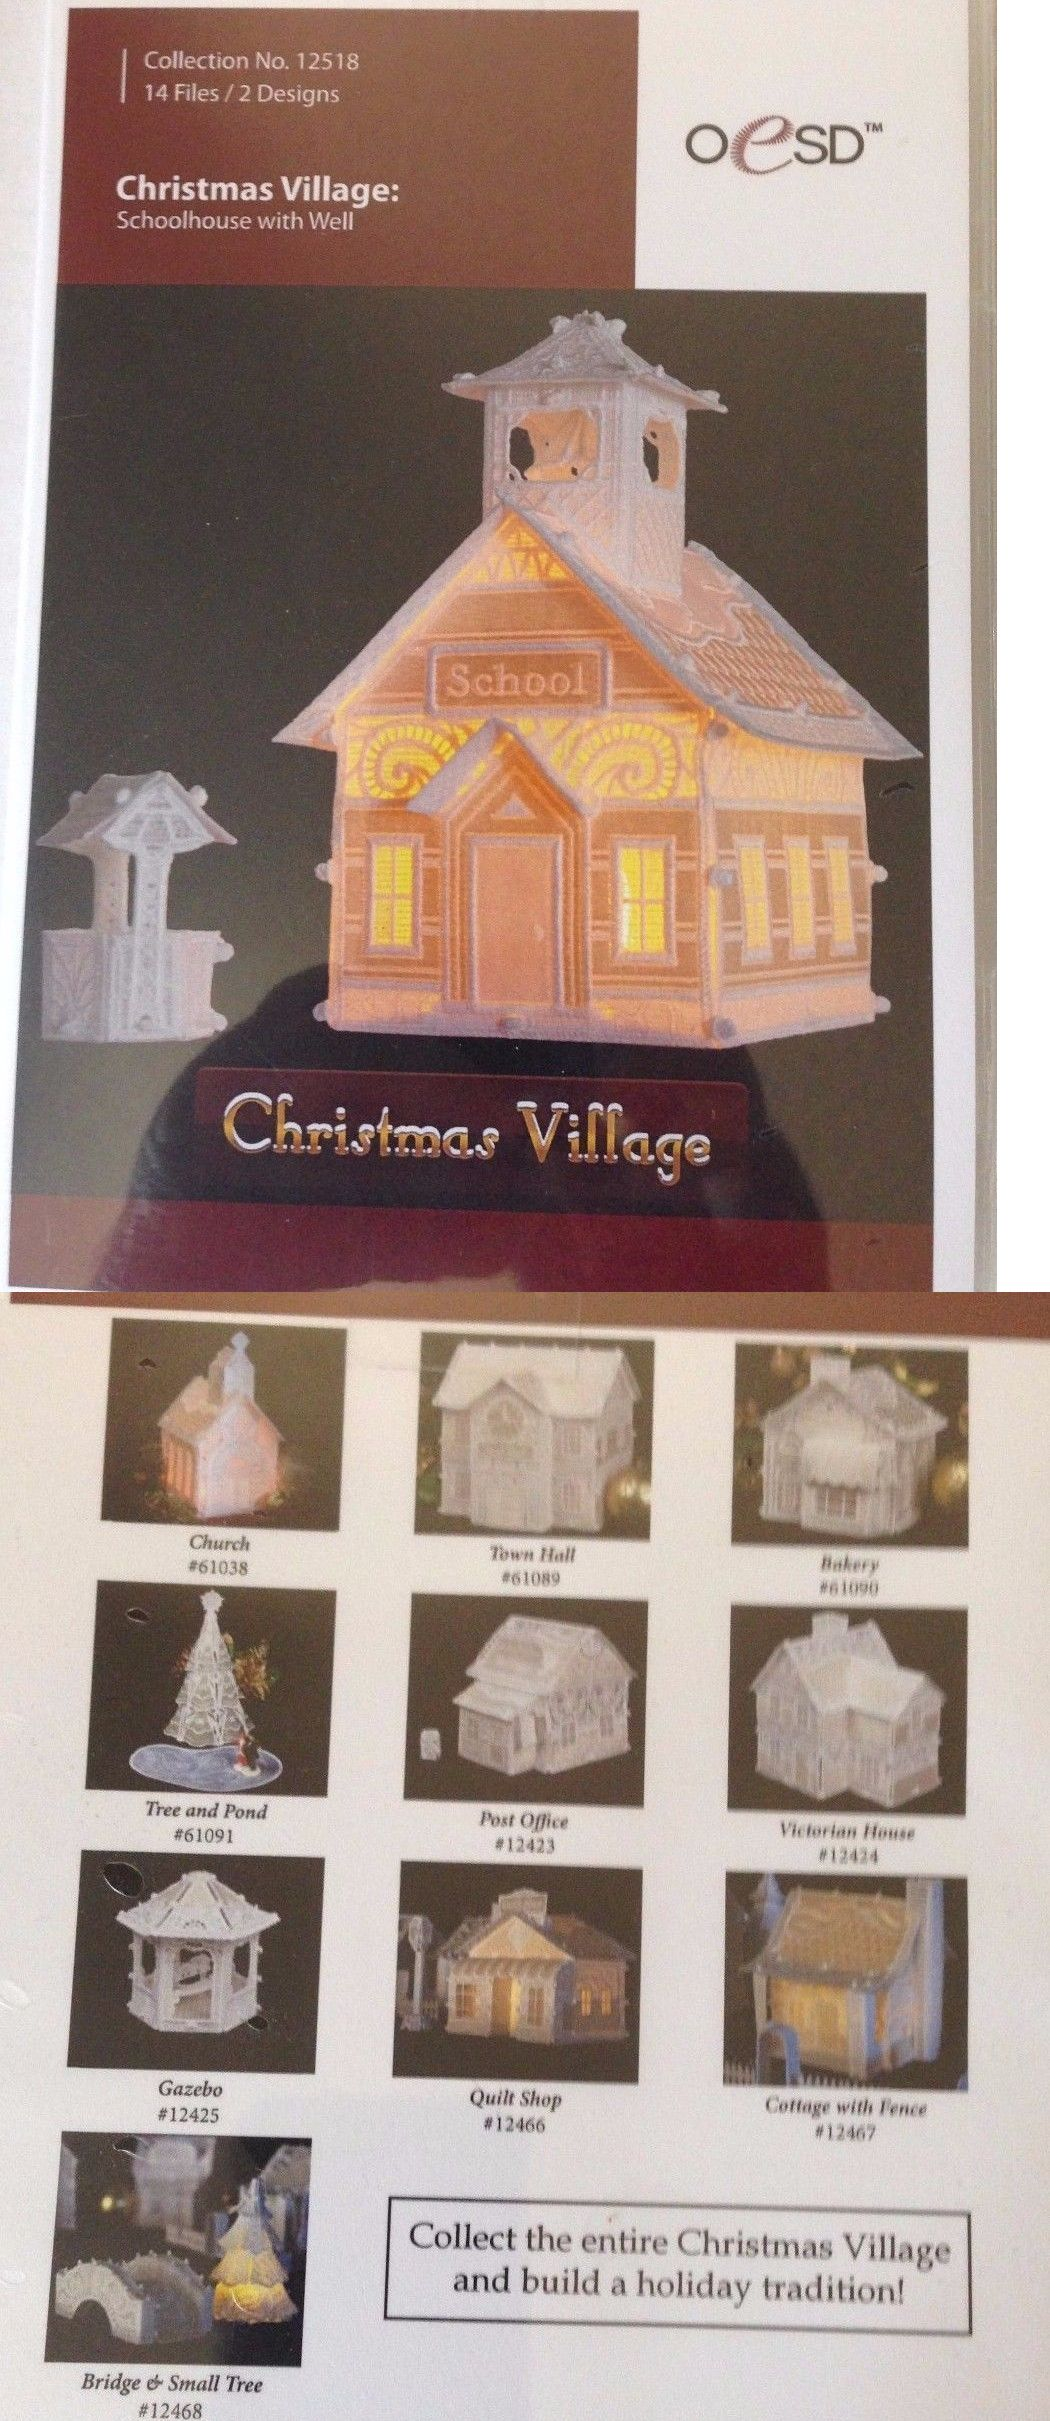 Design Cards and CDs 41383: Oesd,Christmas Village Fsl, Schoolhouse ...